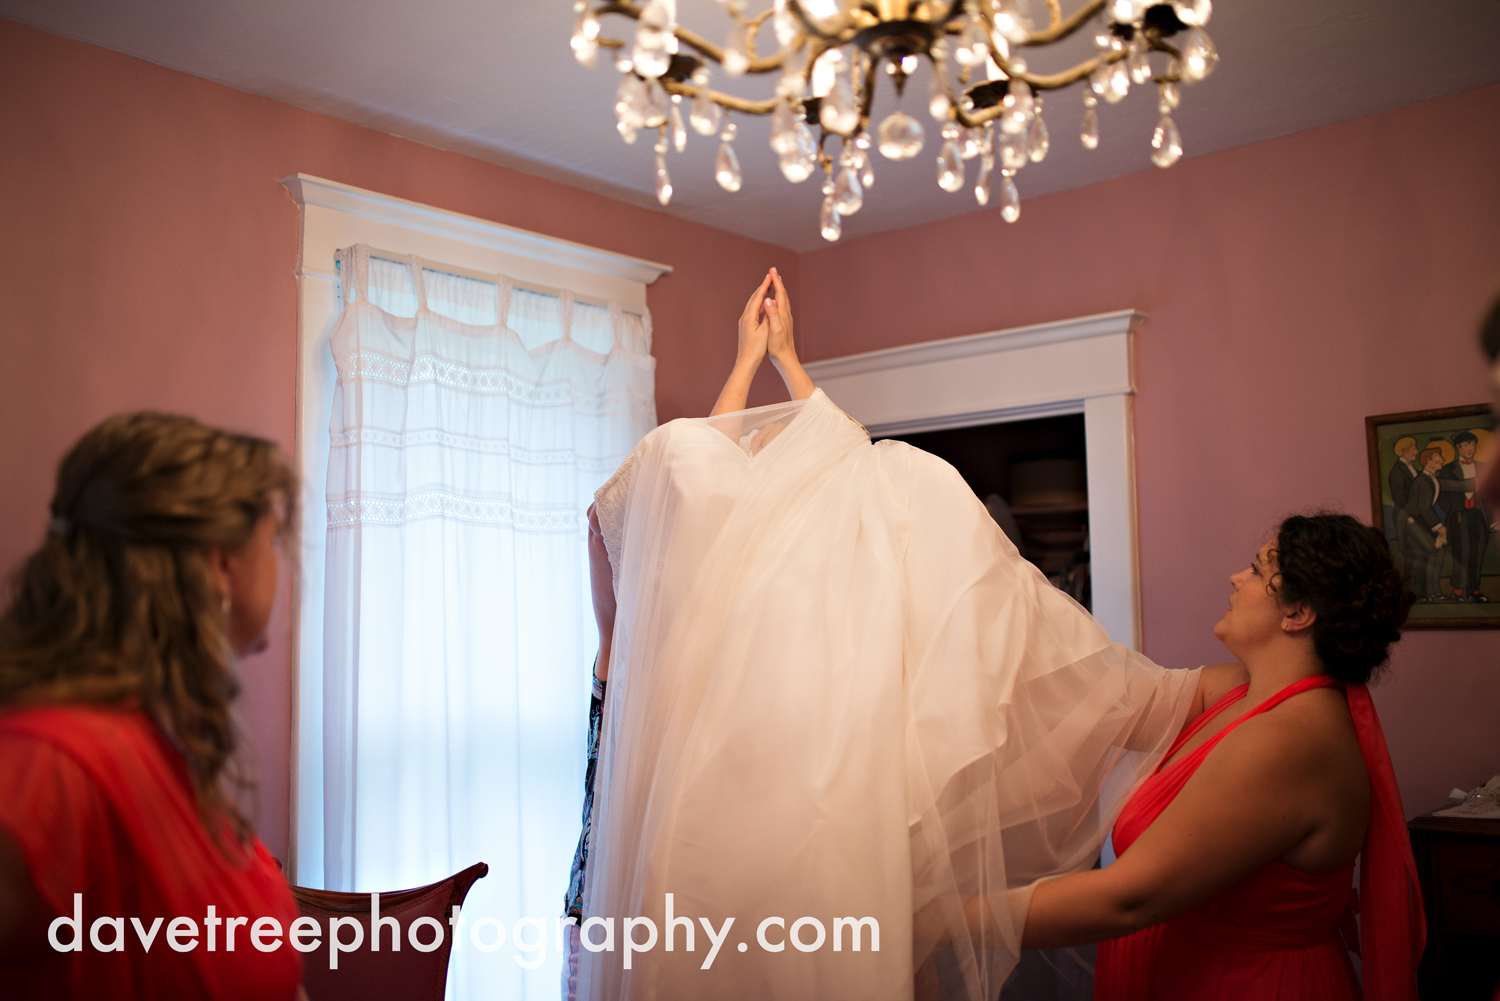 grand_haven_wedding_photographer_weaver_house_wedding_100.jpg